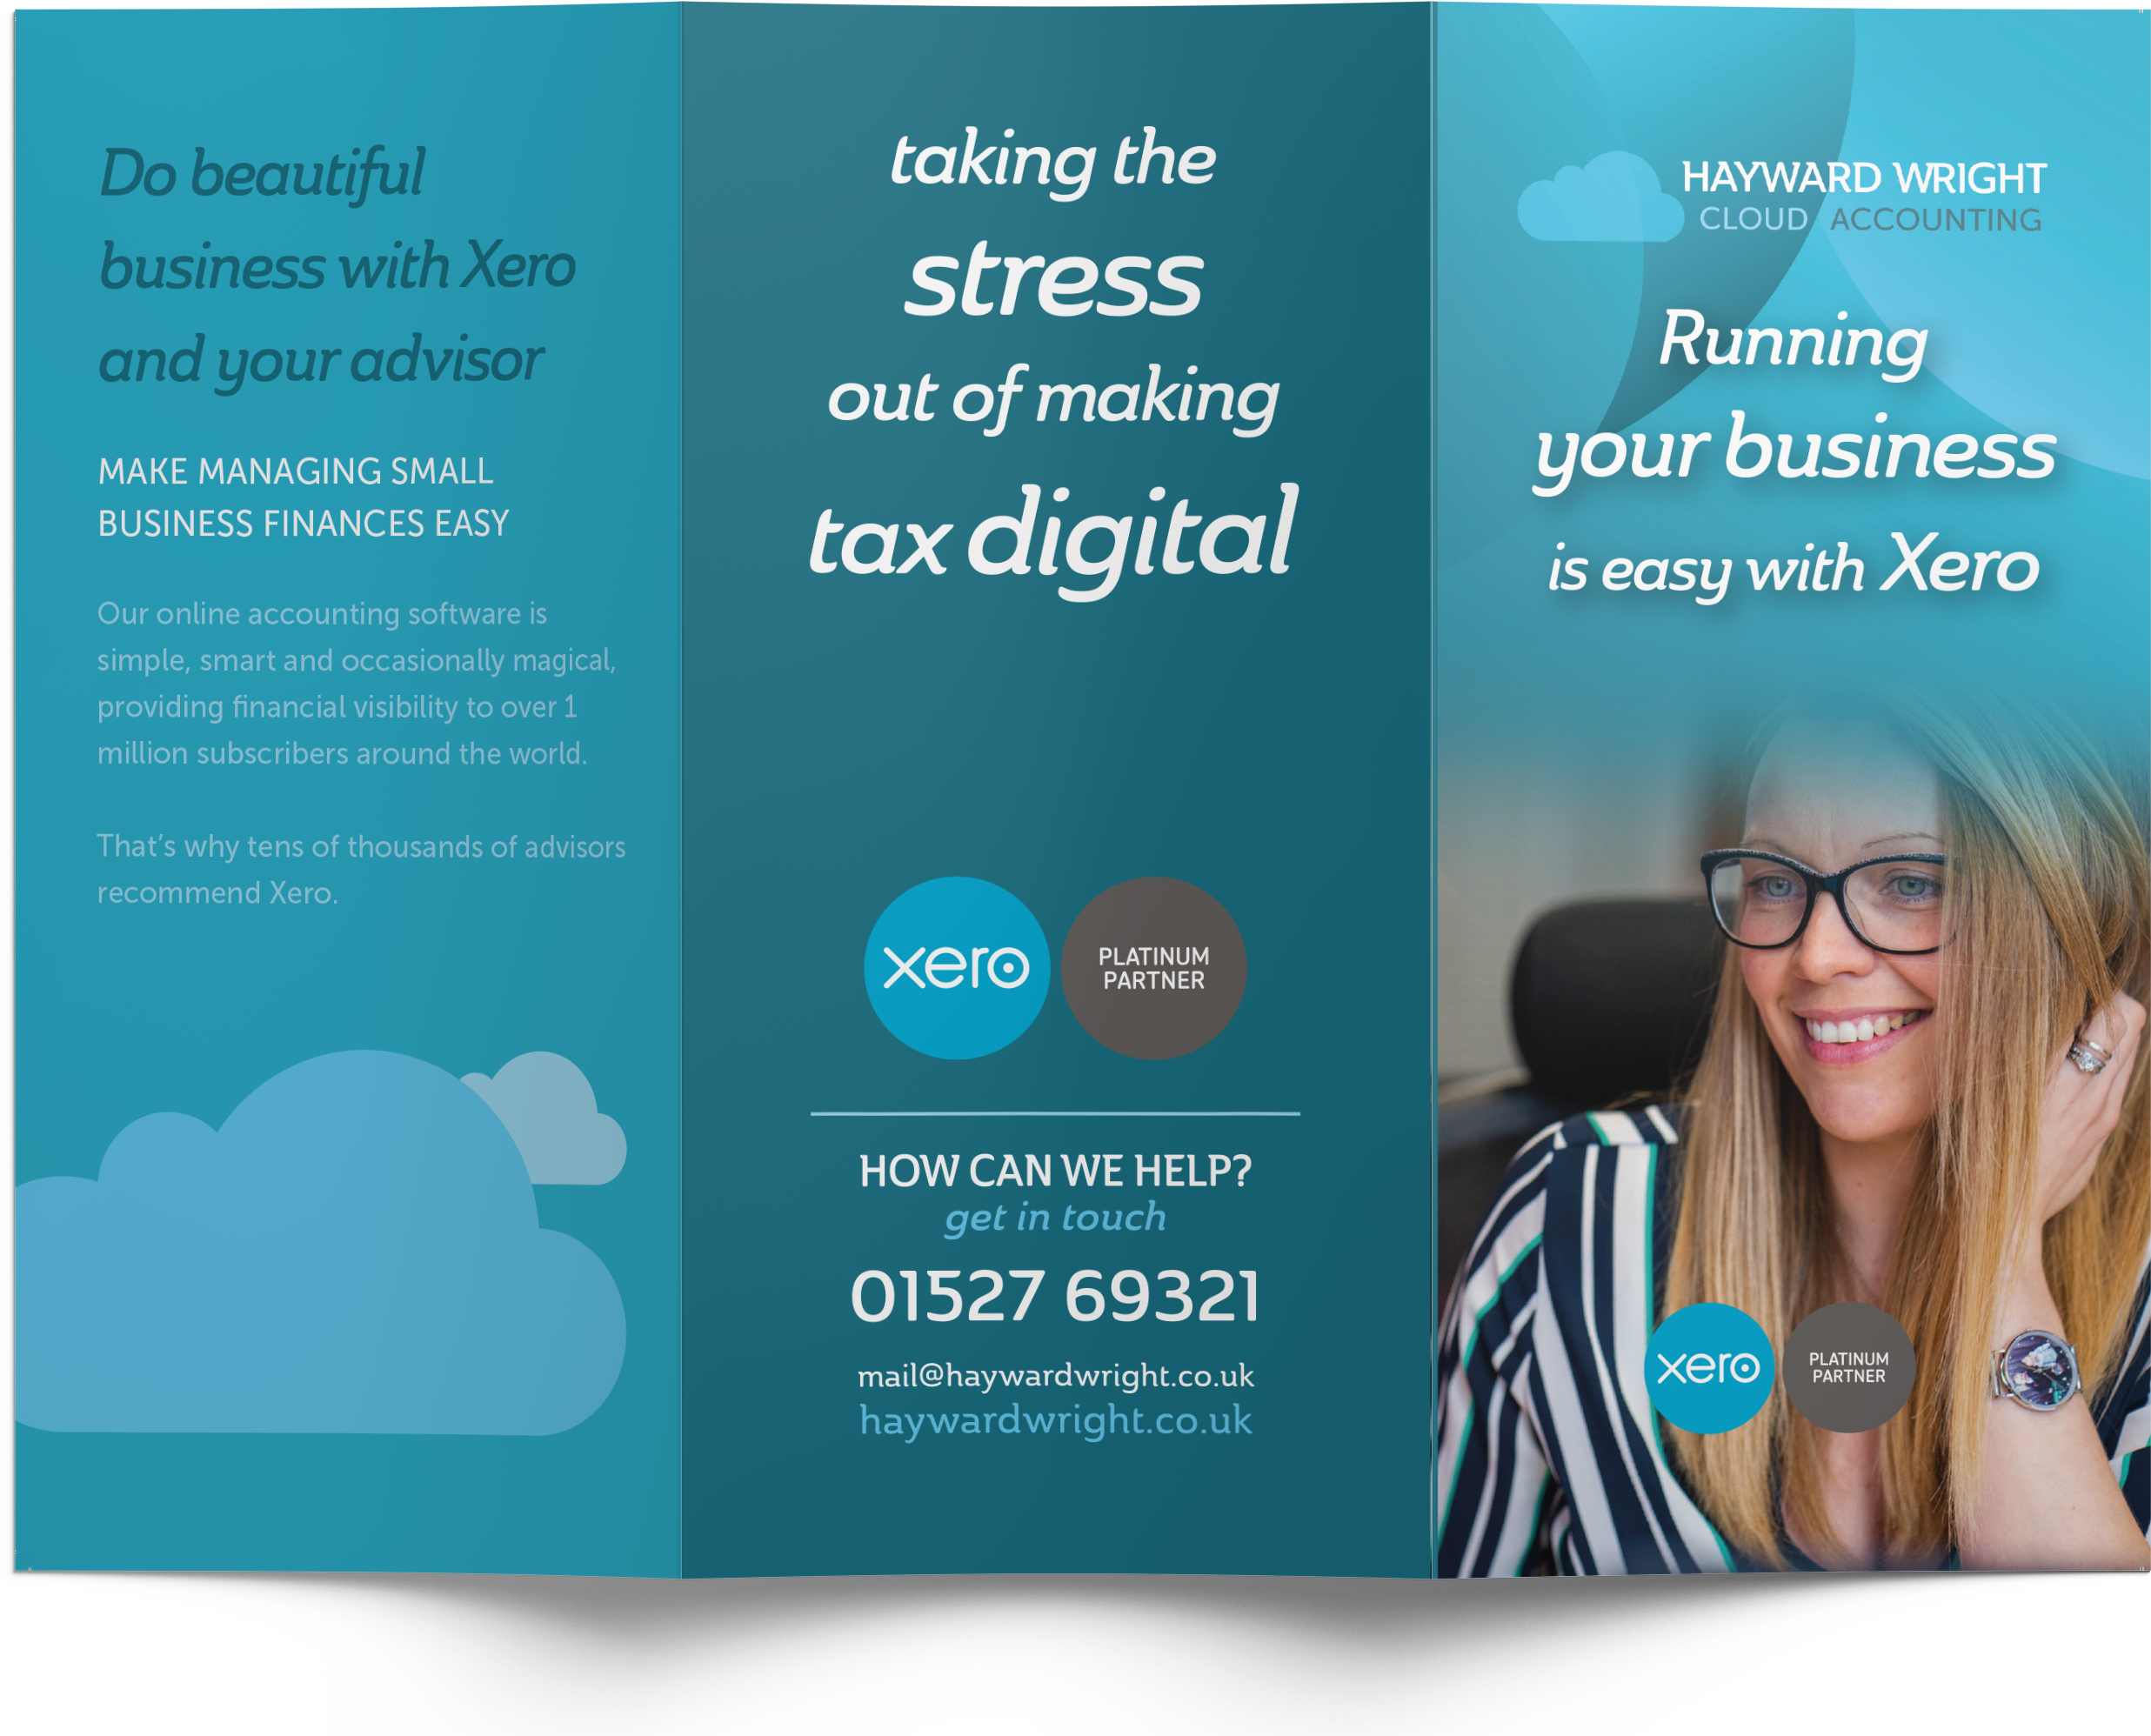 hayward wright cloud accounting business branding leaflet